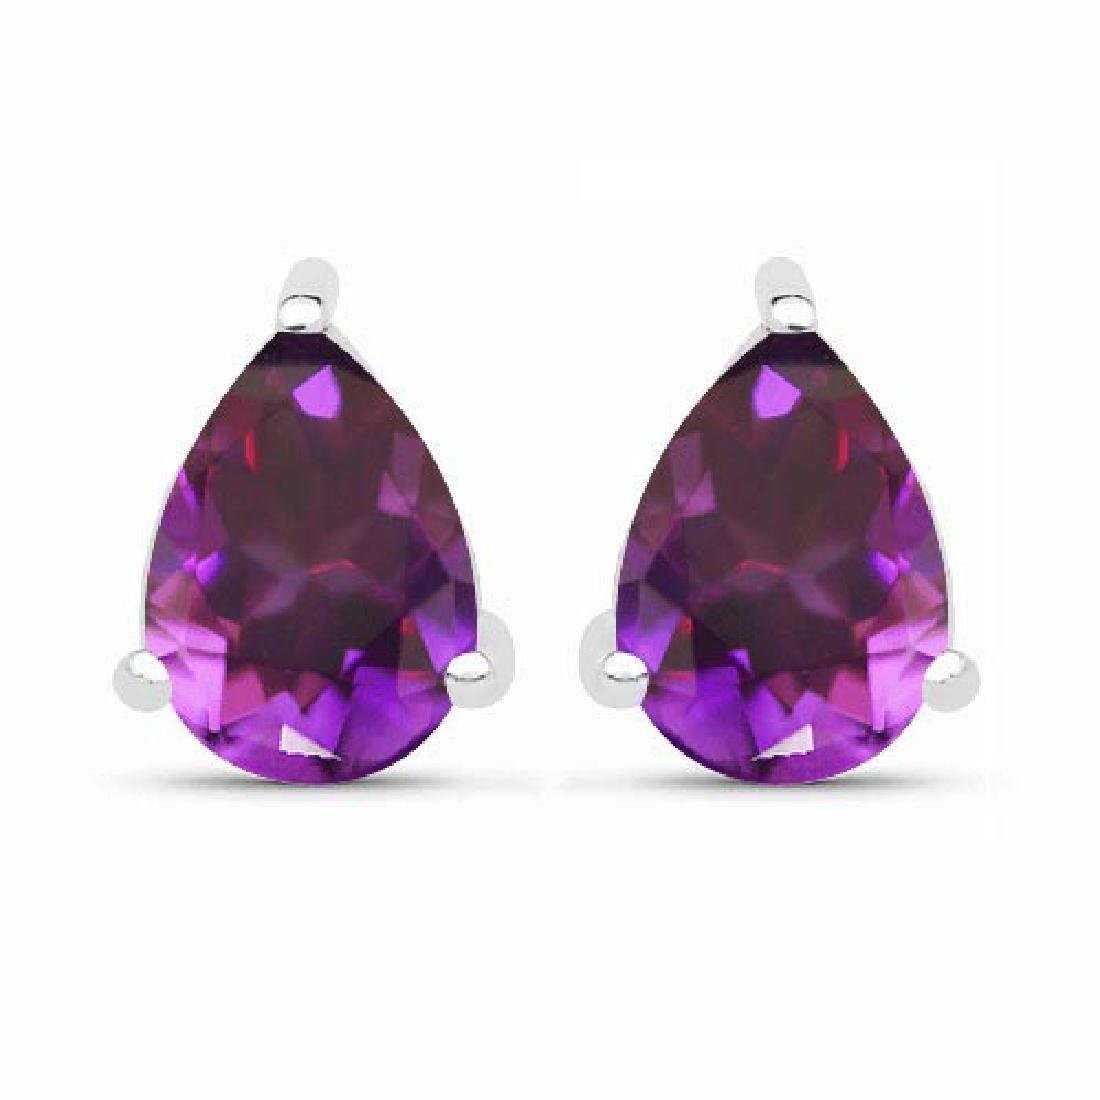 Certified 4.20 CTW Genuine Amethyst And 14K White Gold